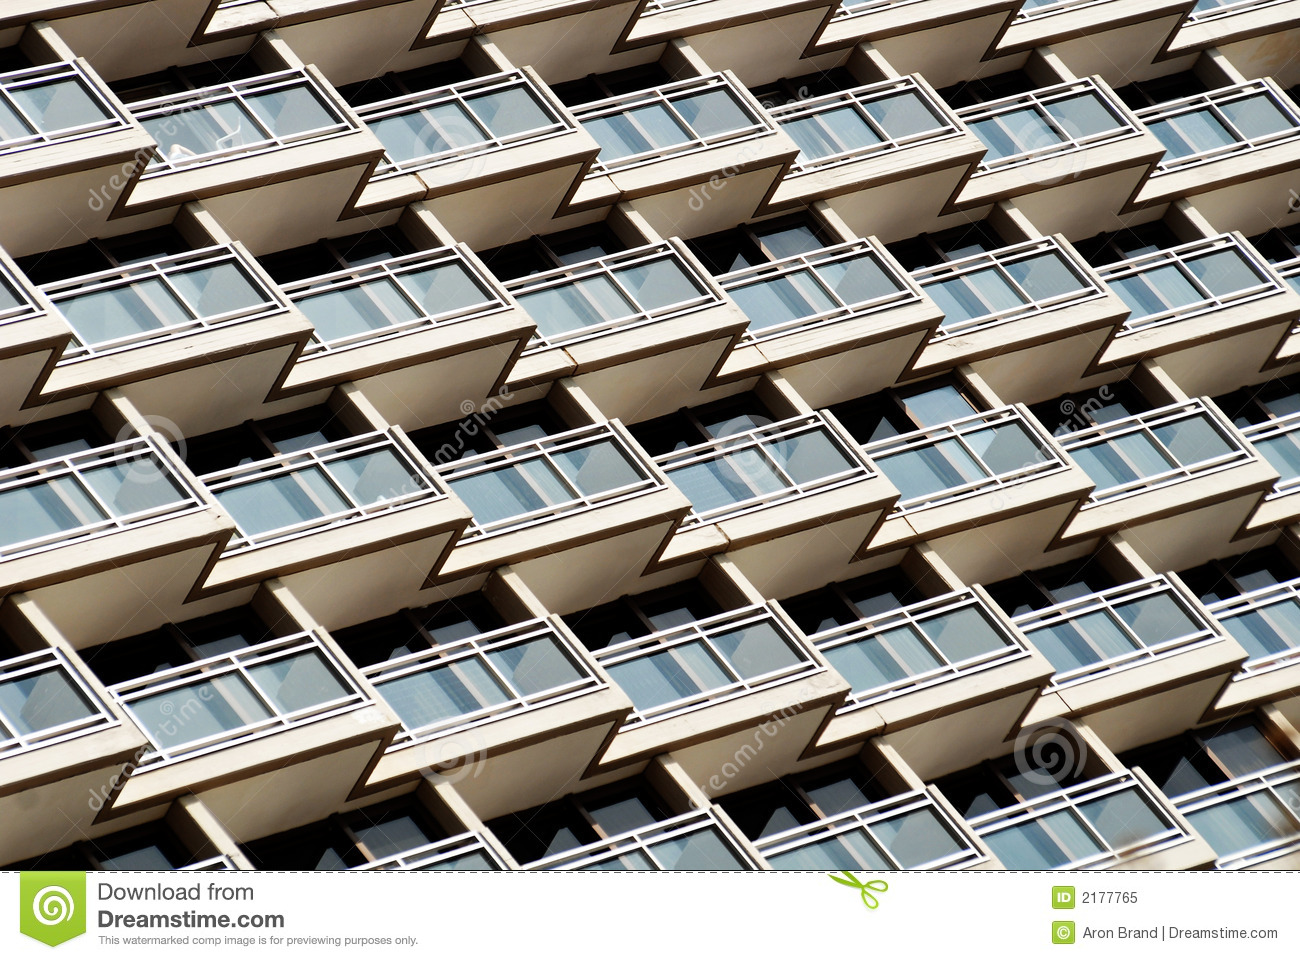 Modern Architecture Pattern modern architecture royalty free stock photo - image: 2177765